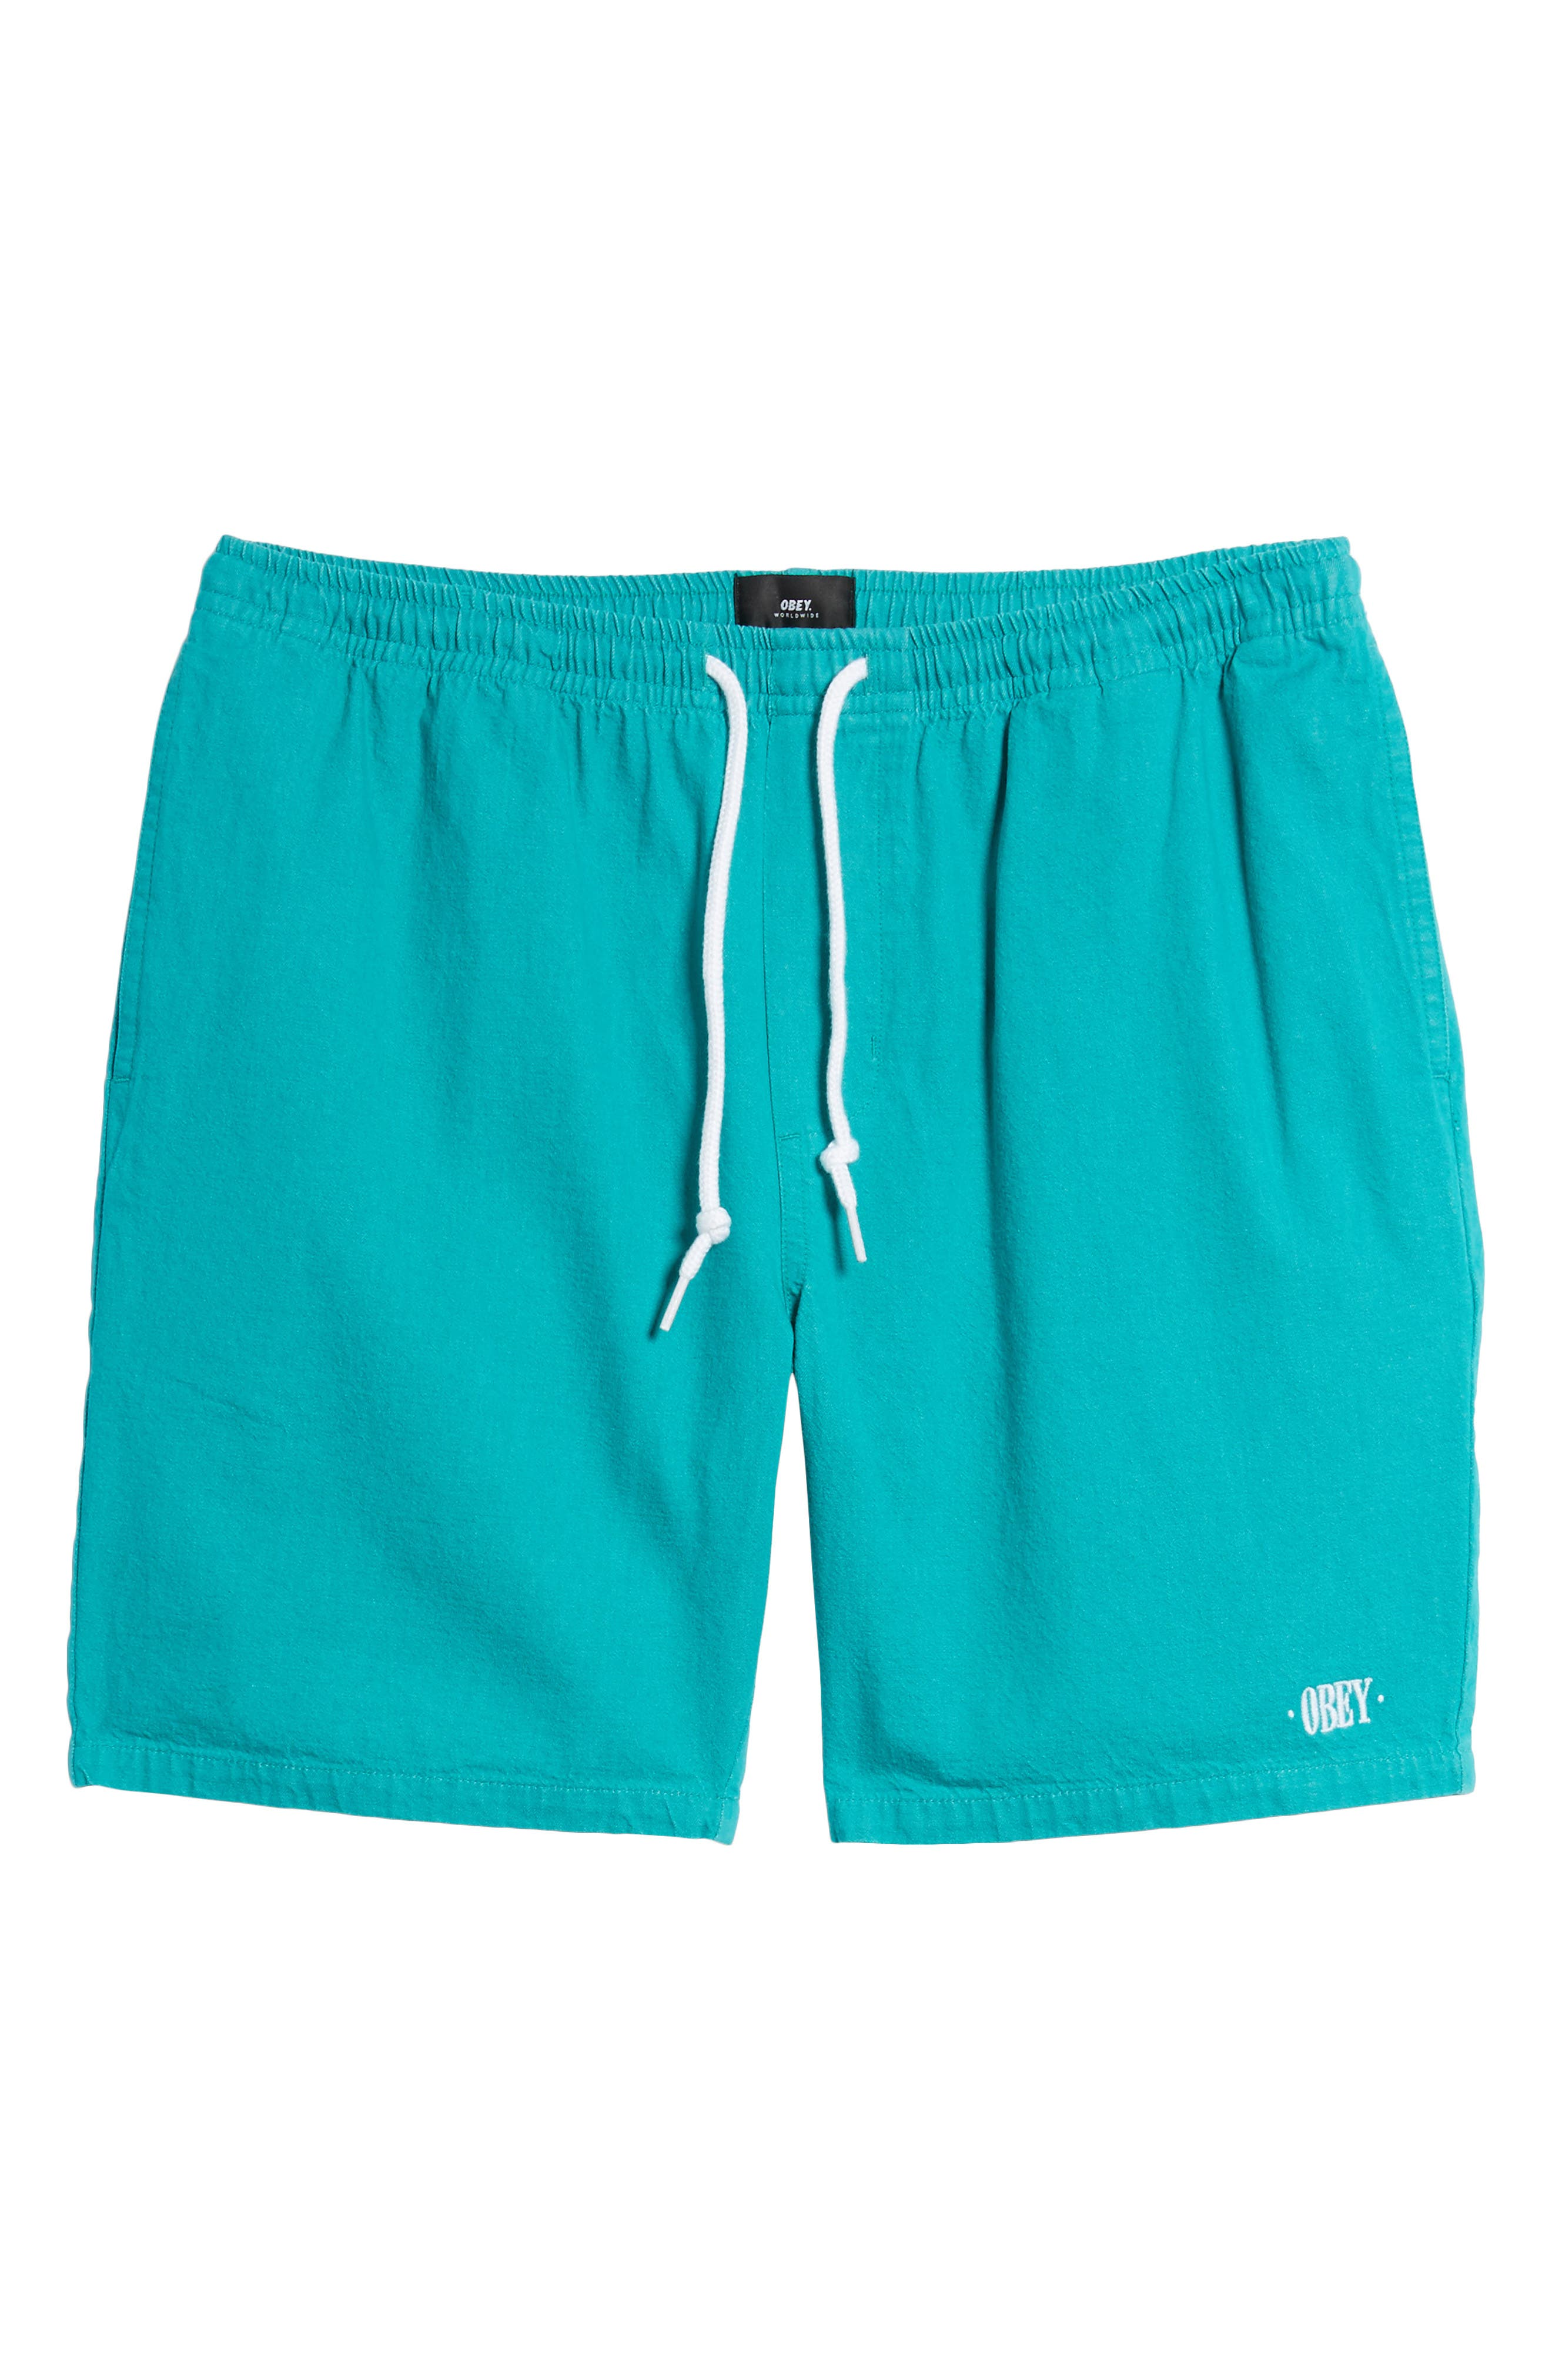 Keble Drawstring Shorts,                             Alternate thumbnail 6, color,                             445